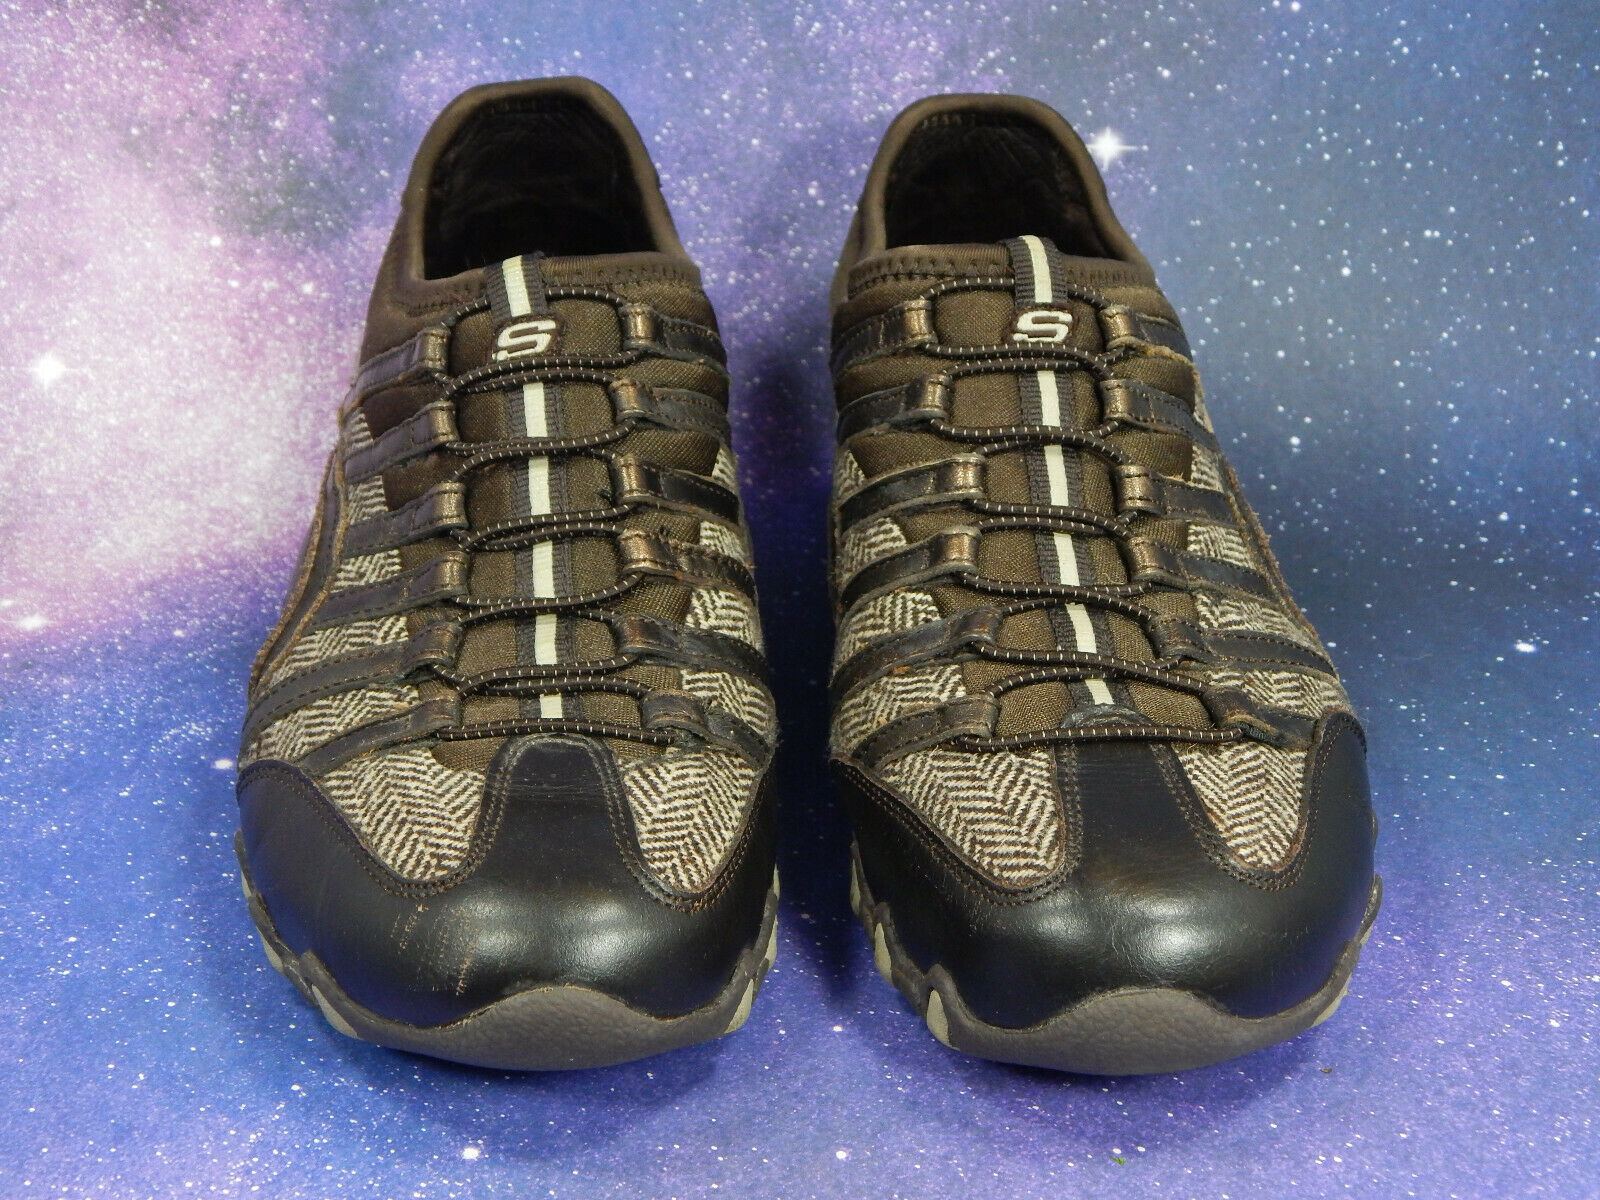 Skechers Active Slip-On Shoes/Sneakers Women's Size 7.5 SN21428 Color: CHBZ EUC! image 4